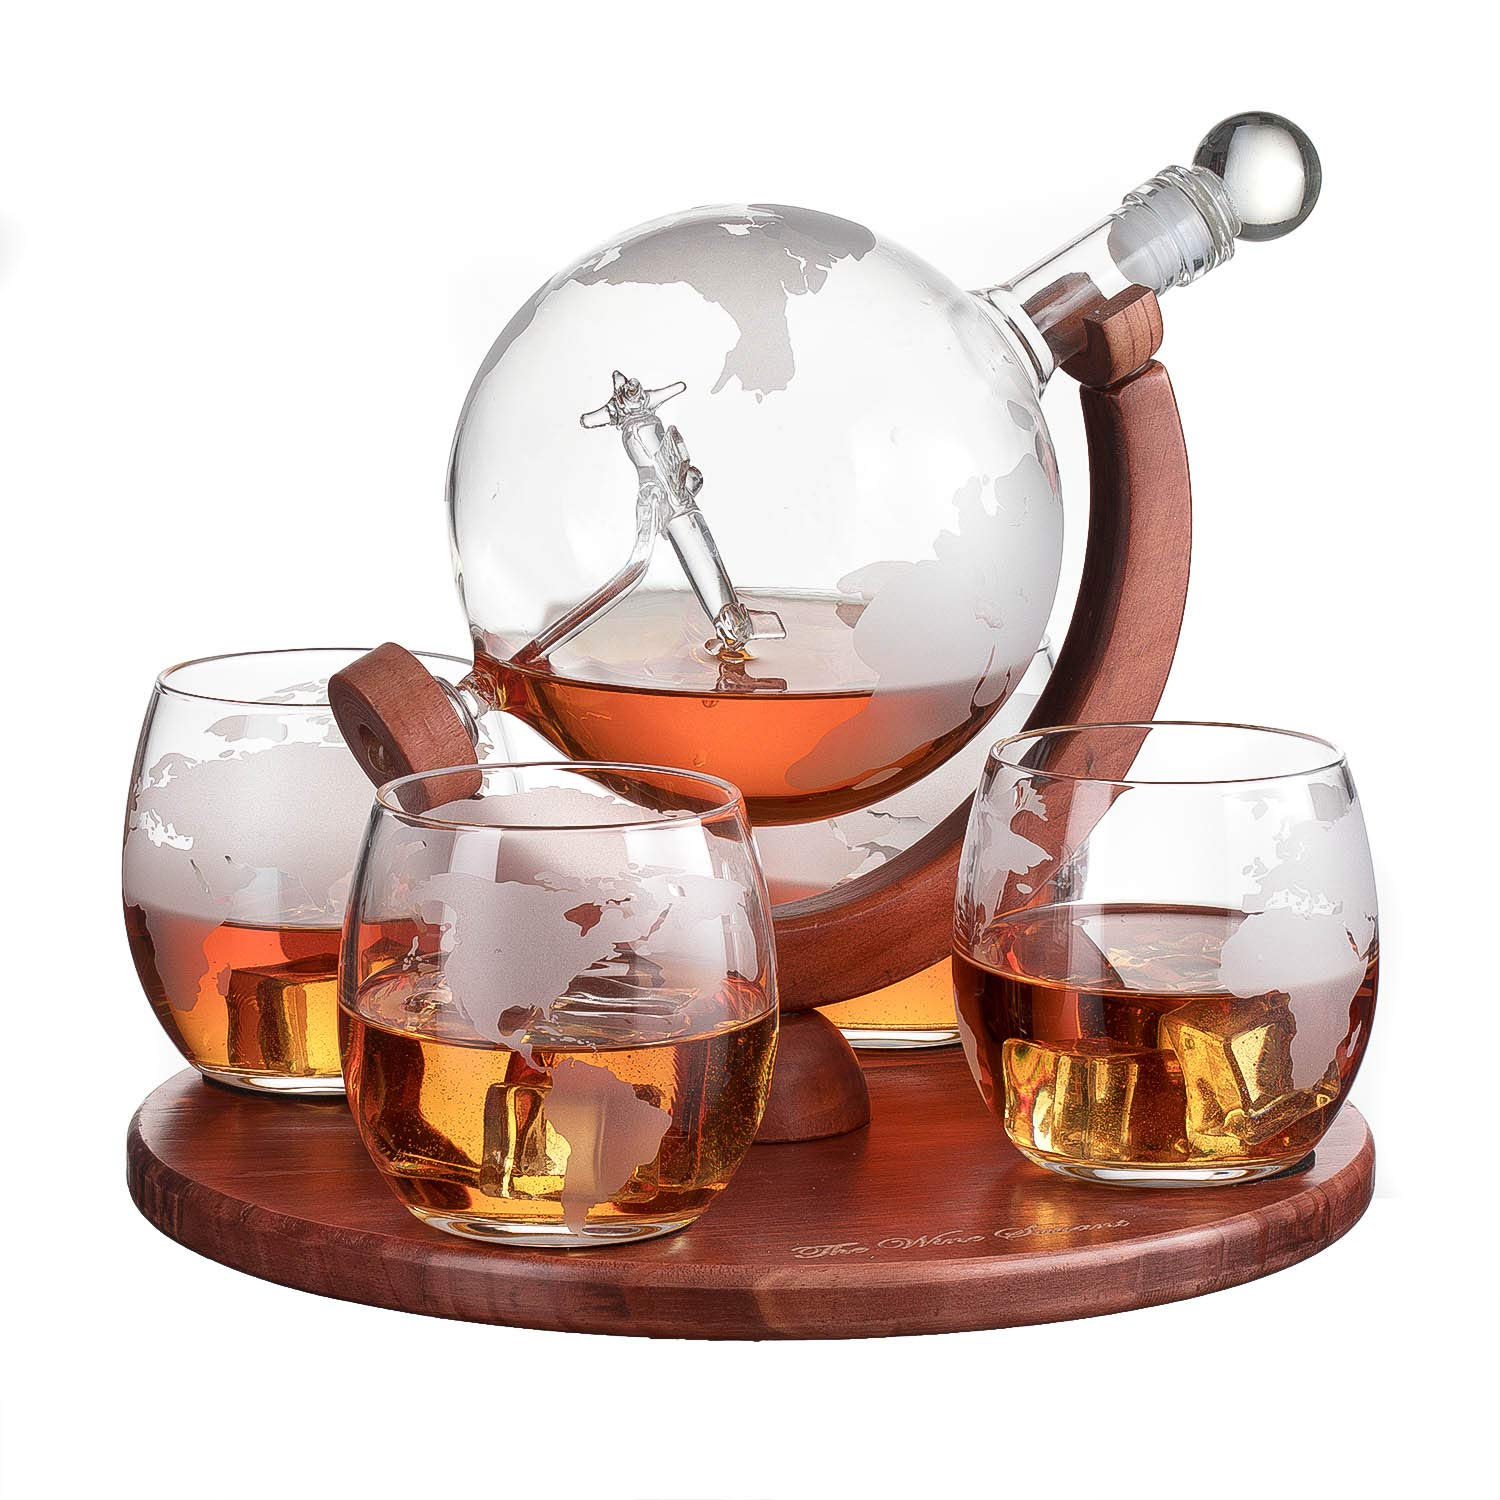 Etched World Decanter whiskey Globe - The Wine Savant Whiskey Gift Set Globe Decanter with Antique Airplane, Whiskey Stones and 4 World Map Glasses, Great Gift - Alcohol Related Gift, HOME BAR DECOR